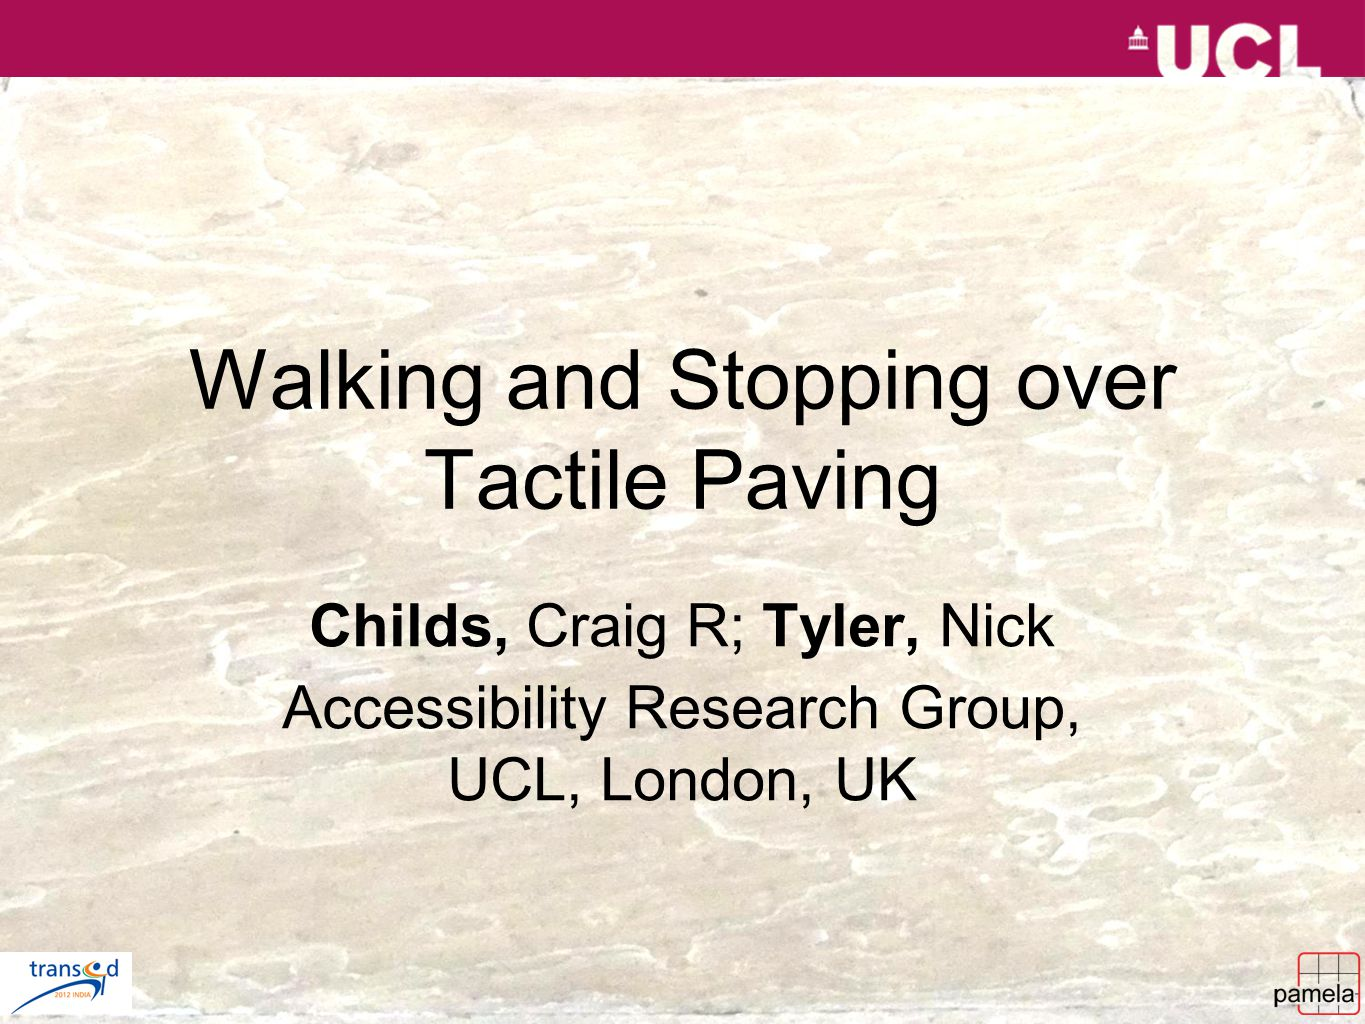 Walking and Stopping over Tactile Paving Childs, Craig R; Tyler, Nick Accessibility Research Group, UCL, London, UK